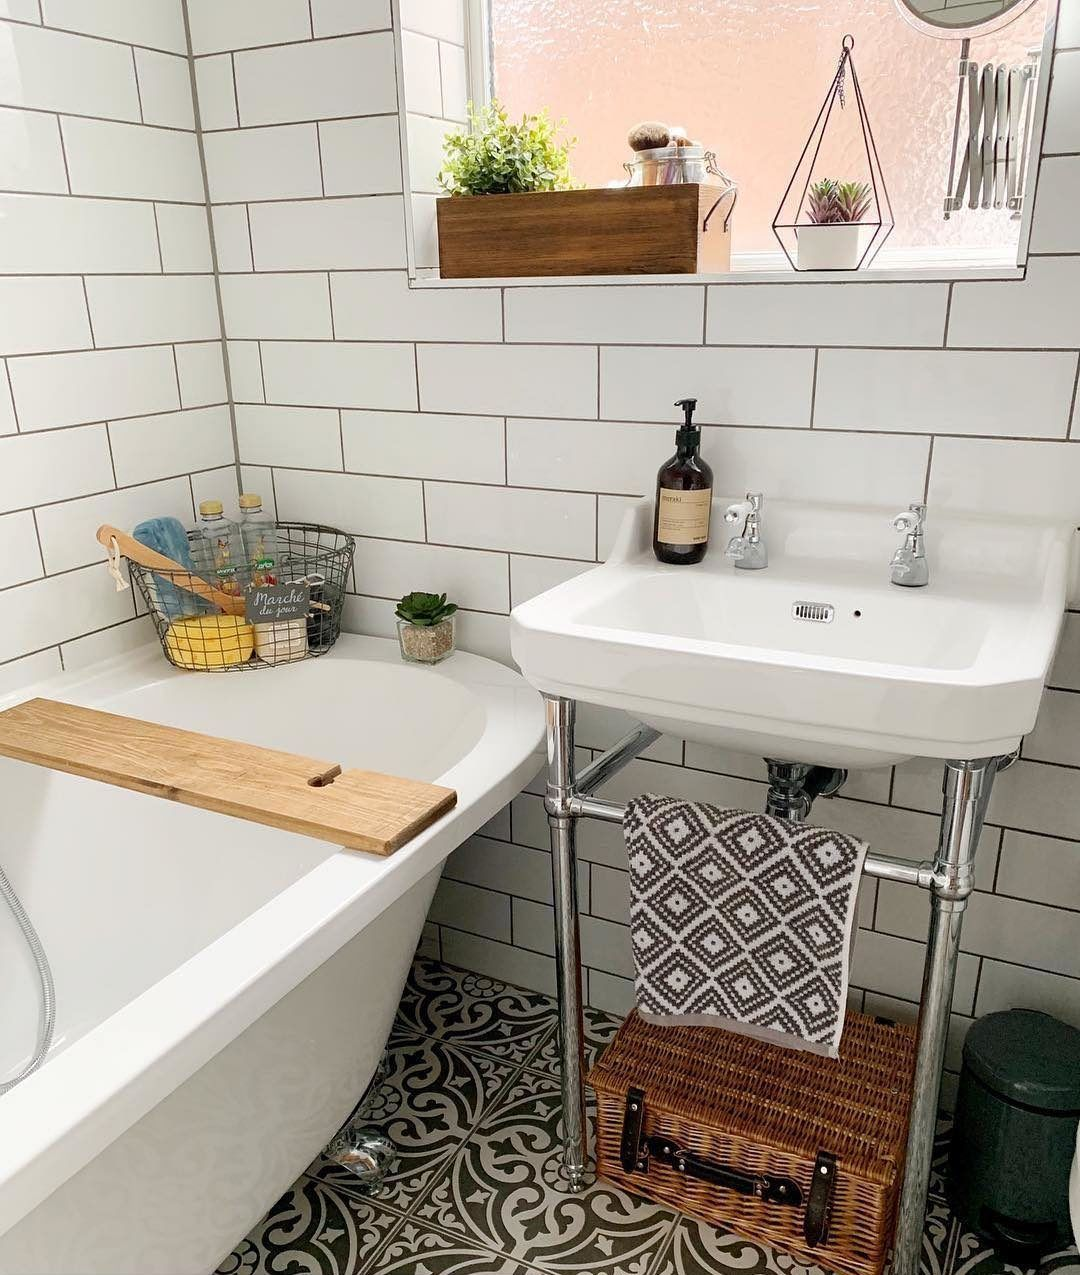 Small Bathroom Trends 2020 Photos And Videos Of Small Bathroom 2020 Small Bathroom Trends Bathroom Trends Large Bathroom Design